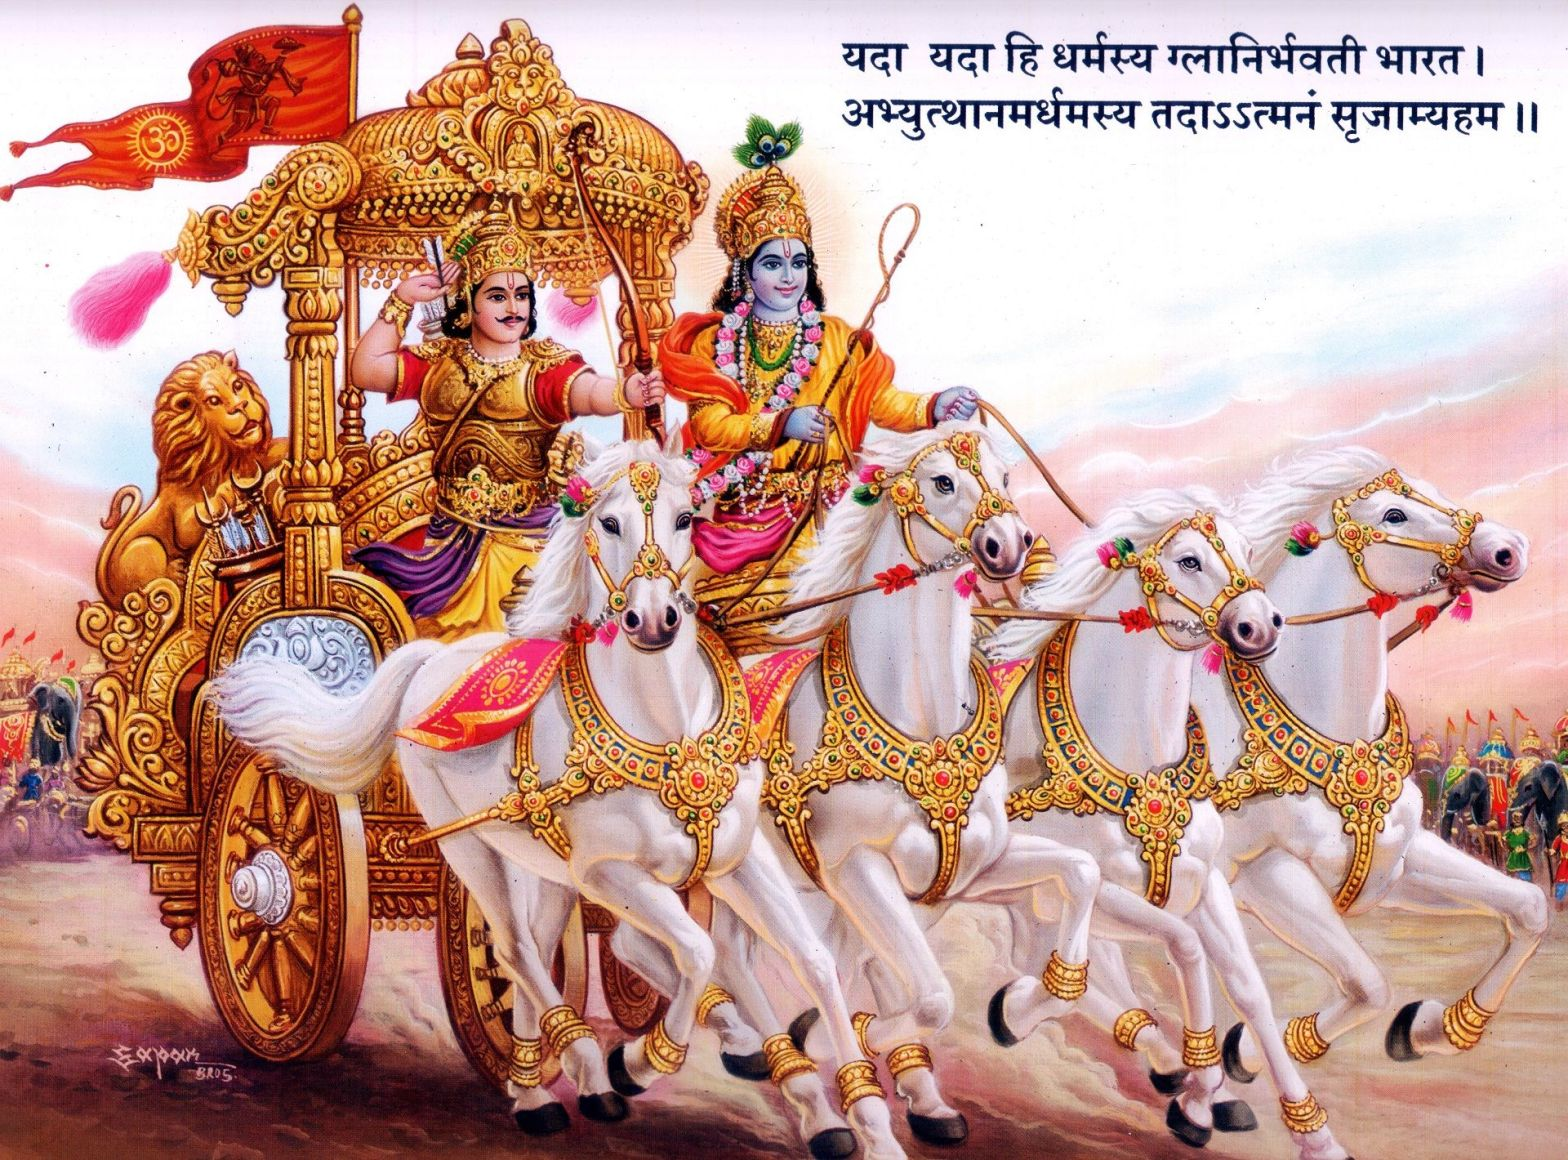 Introduction to Mahabharata